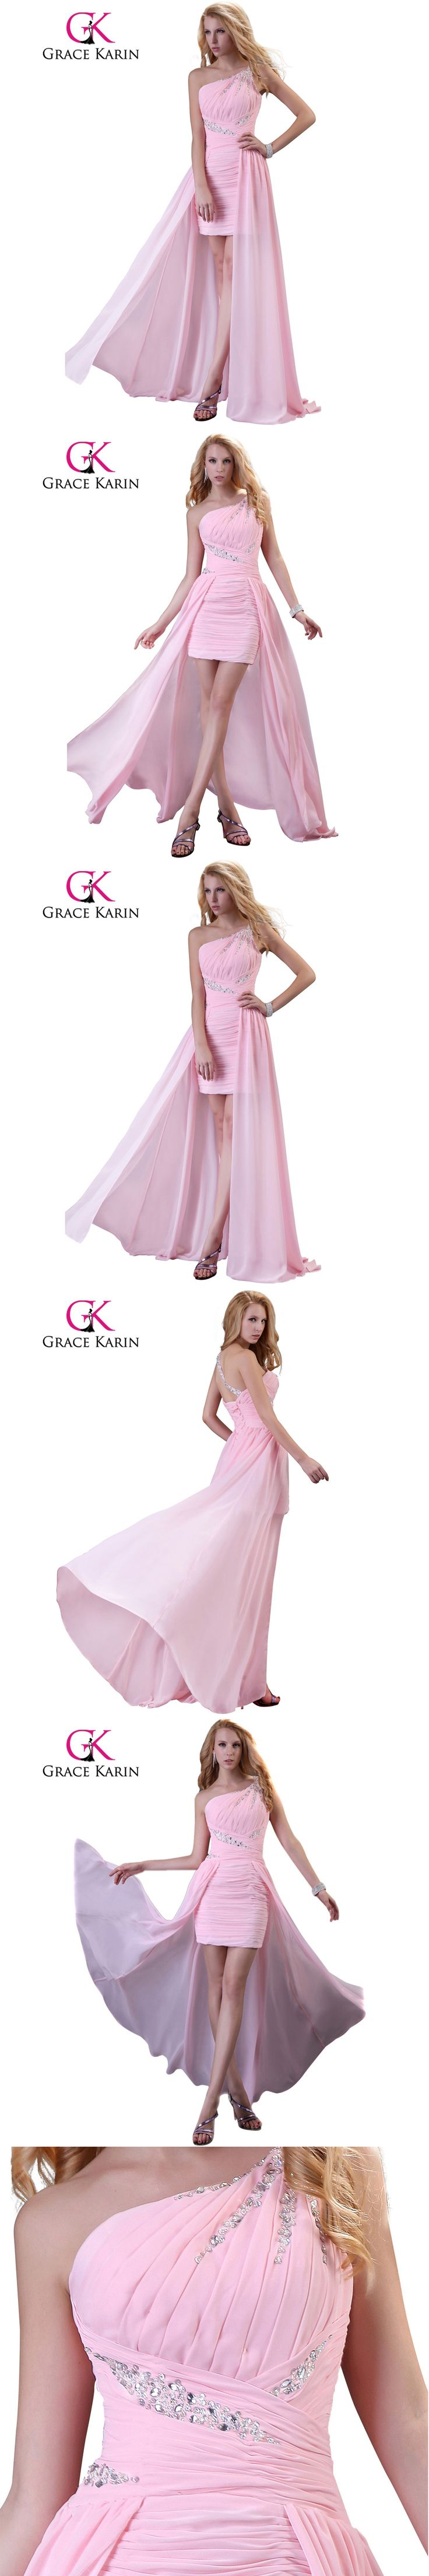 Grace Karin Elegant Cheap Prom Dress One Shoulder Pink Robes De Soiree 2017 Short Front Long Back Chiffon Long Evening Dresses